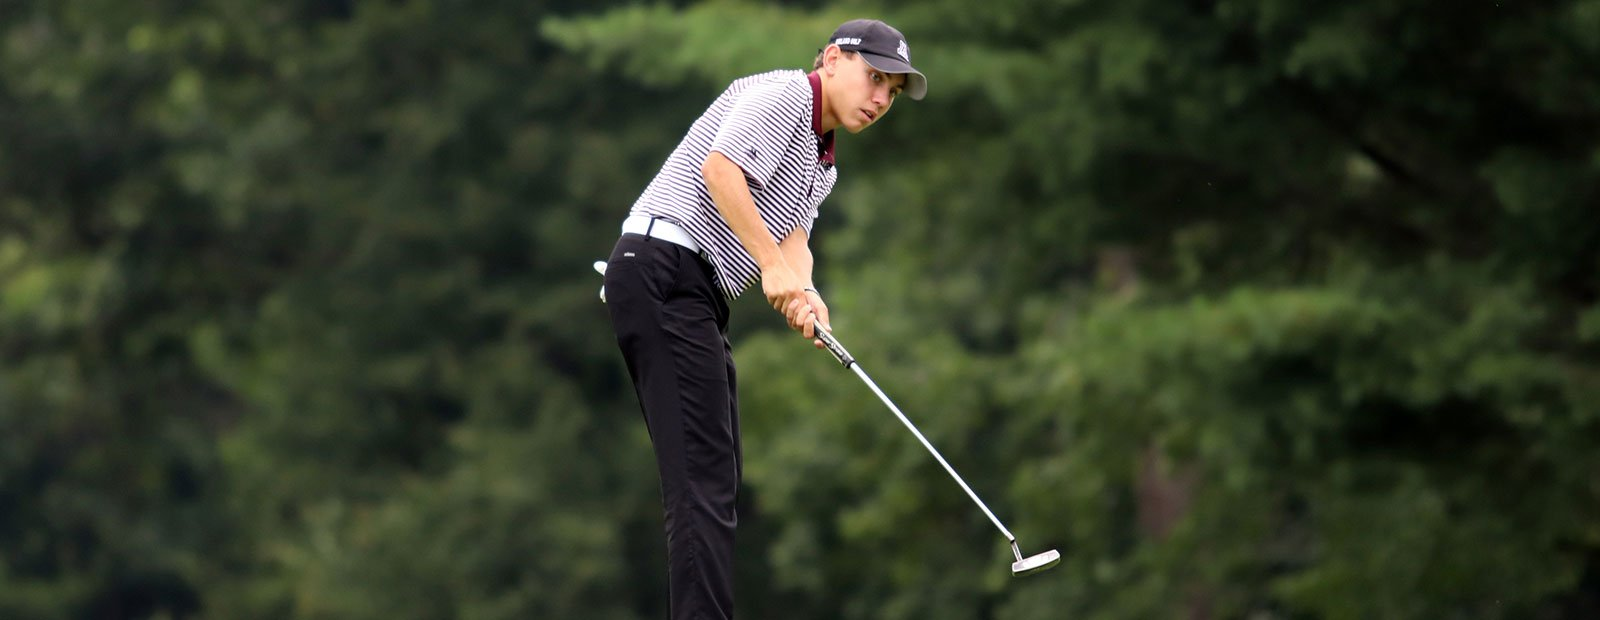 Jake Damron to play in with top PGA TOUR professionals